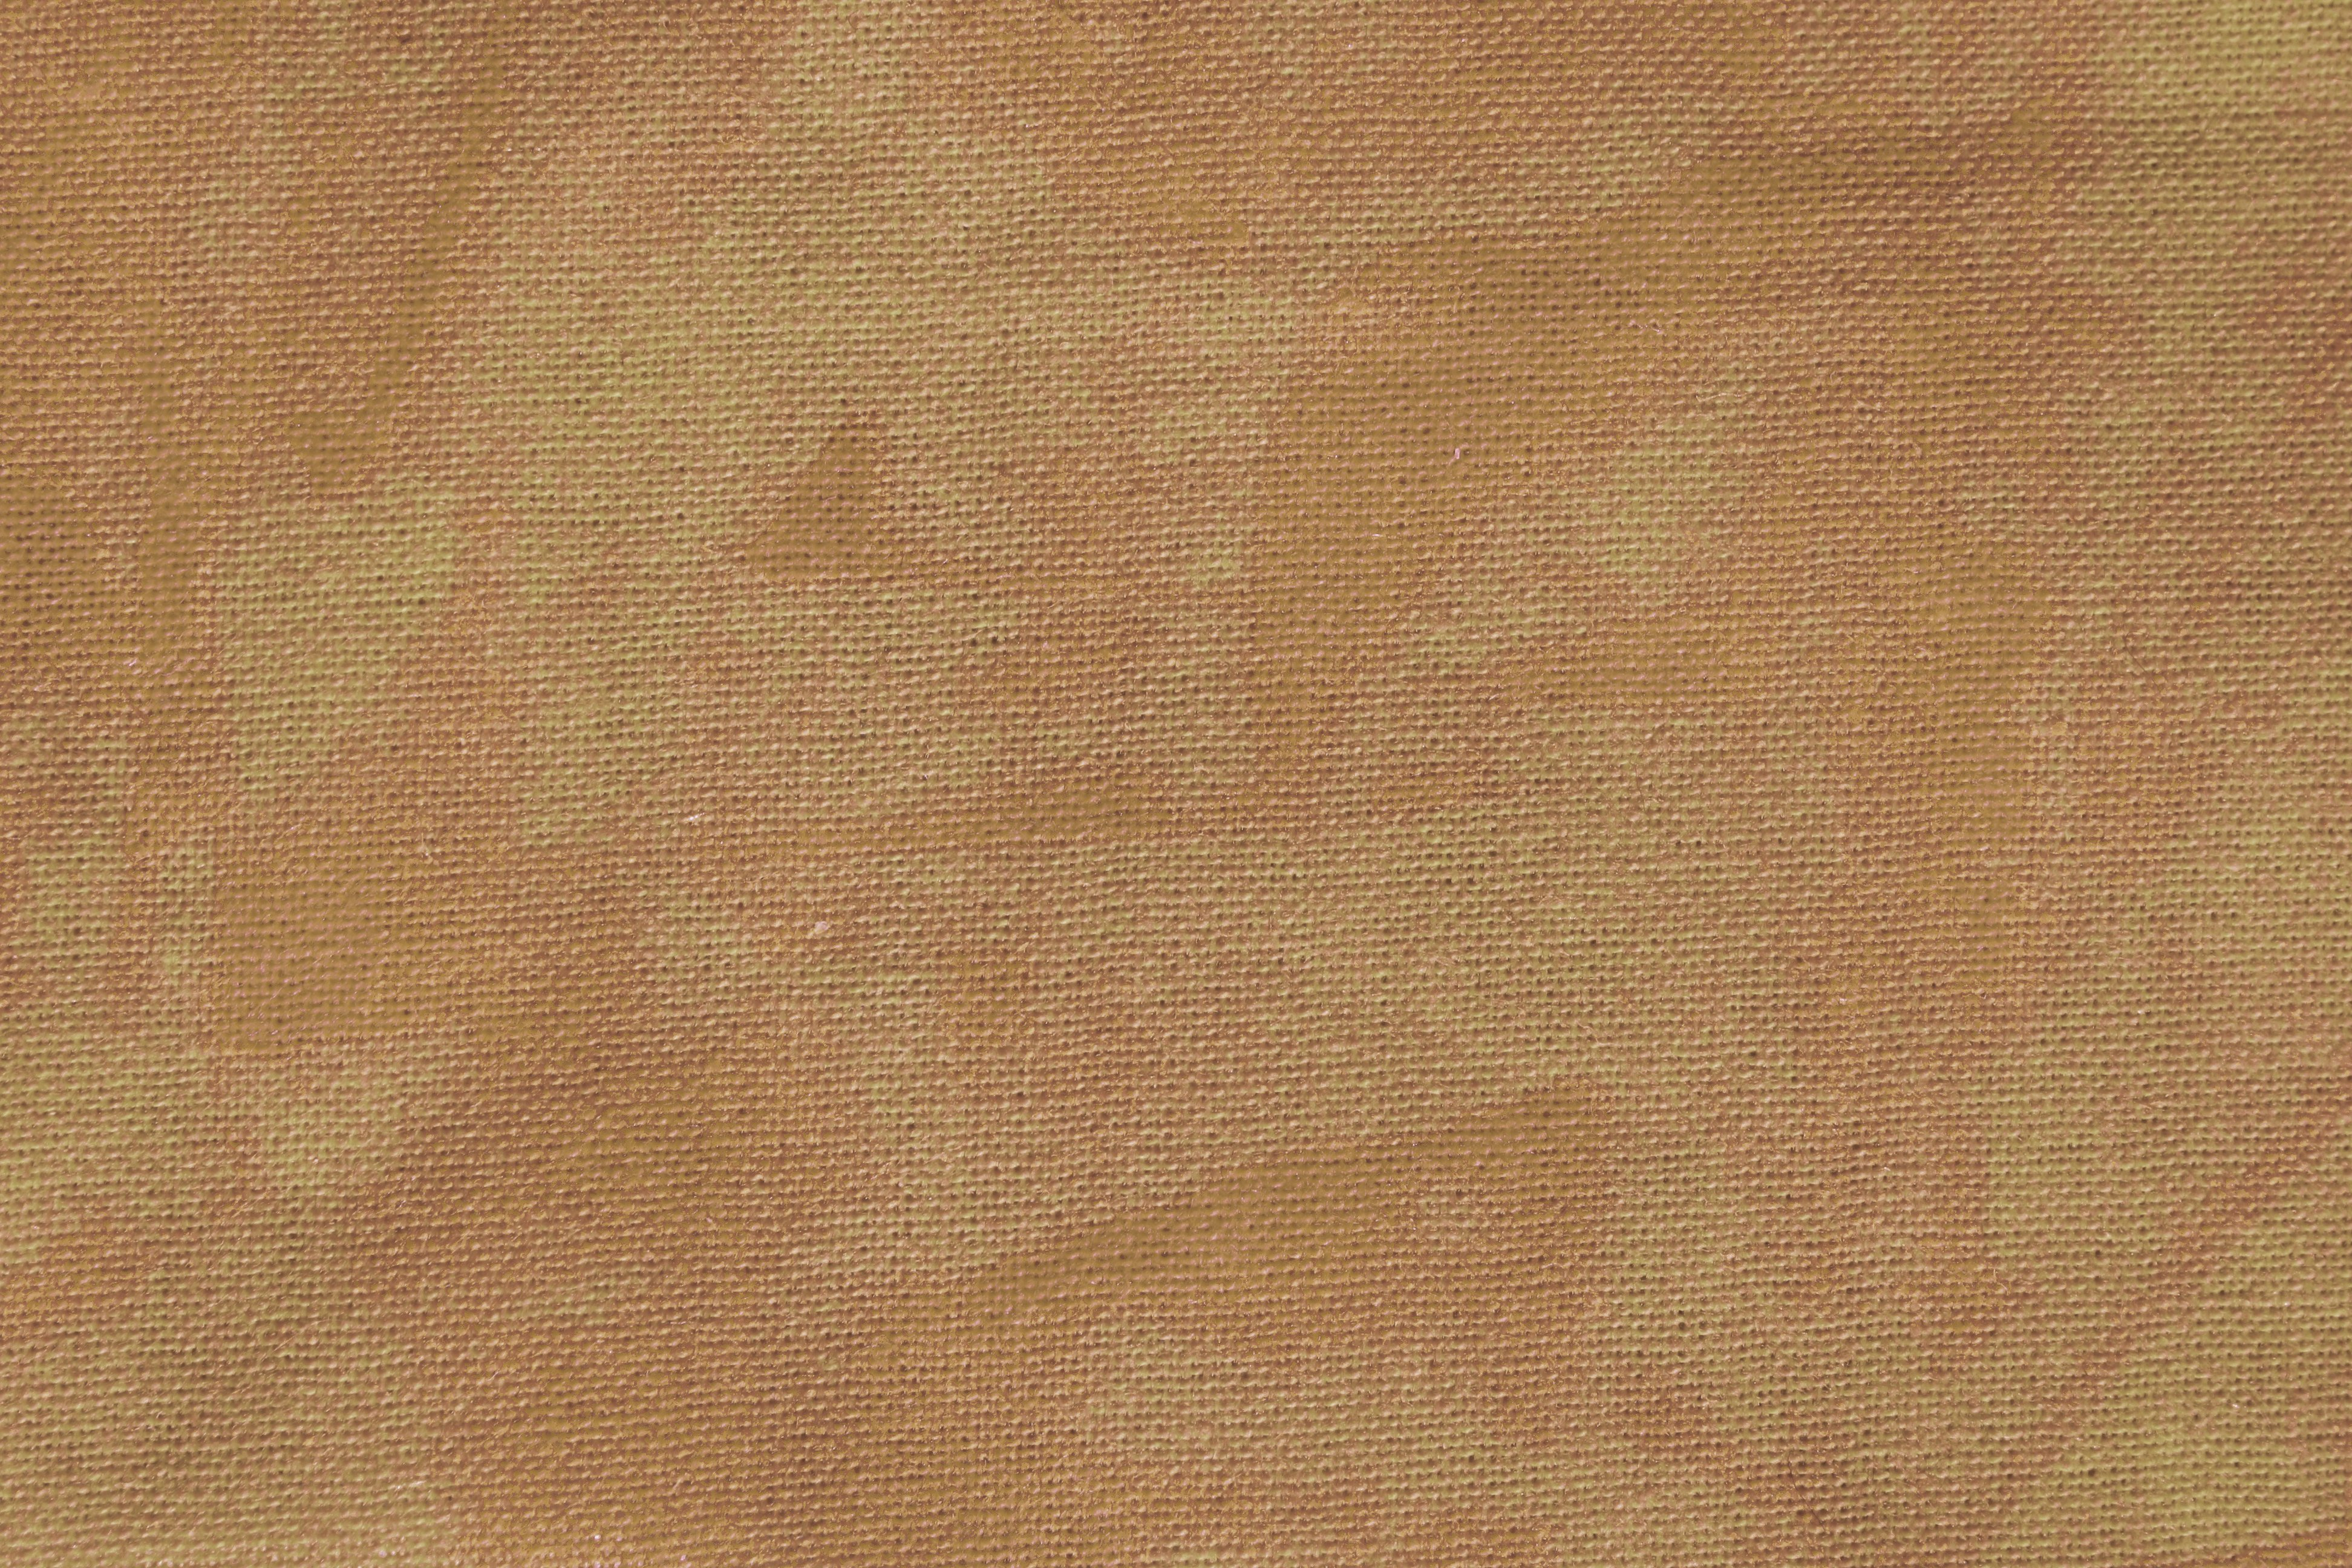 Light Brown Background Design Images Crazy Gallery 3888x2592